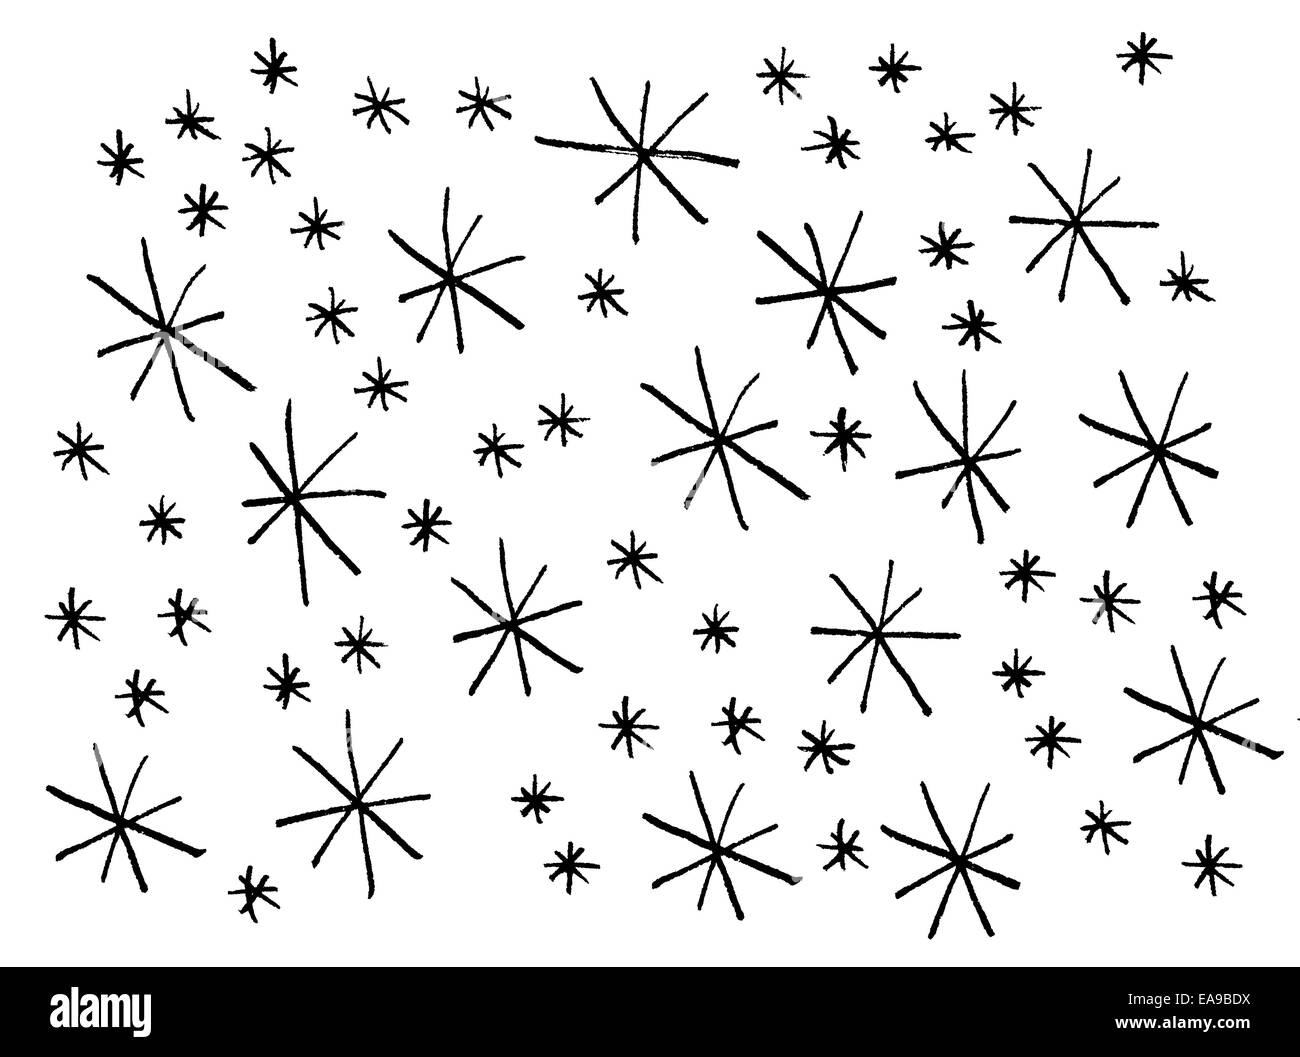 White and black star pattern in grungy, organic style for winter holidays or Christmas. Stock Photo